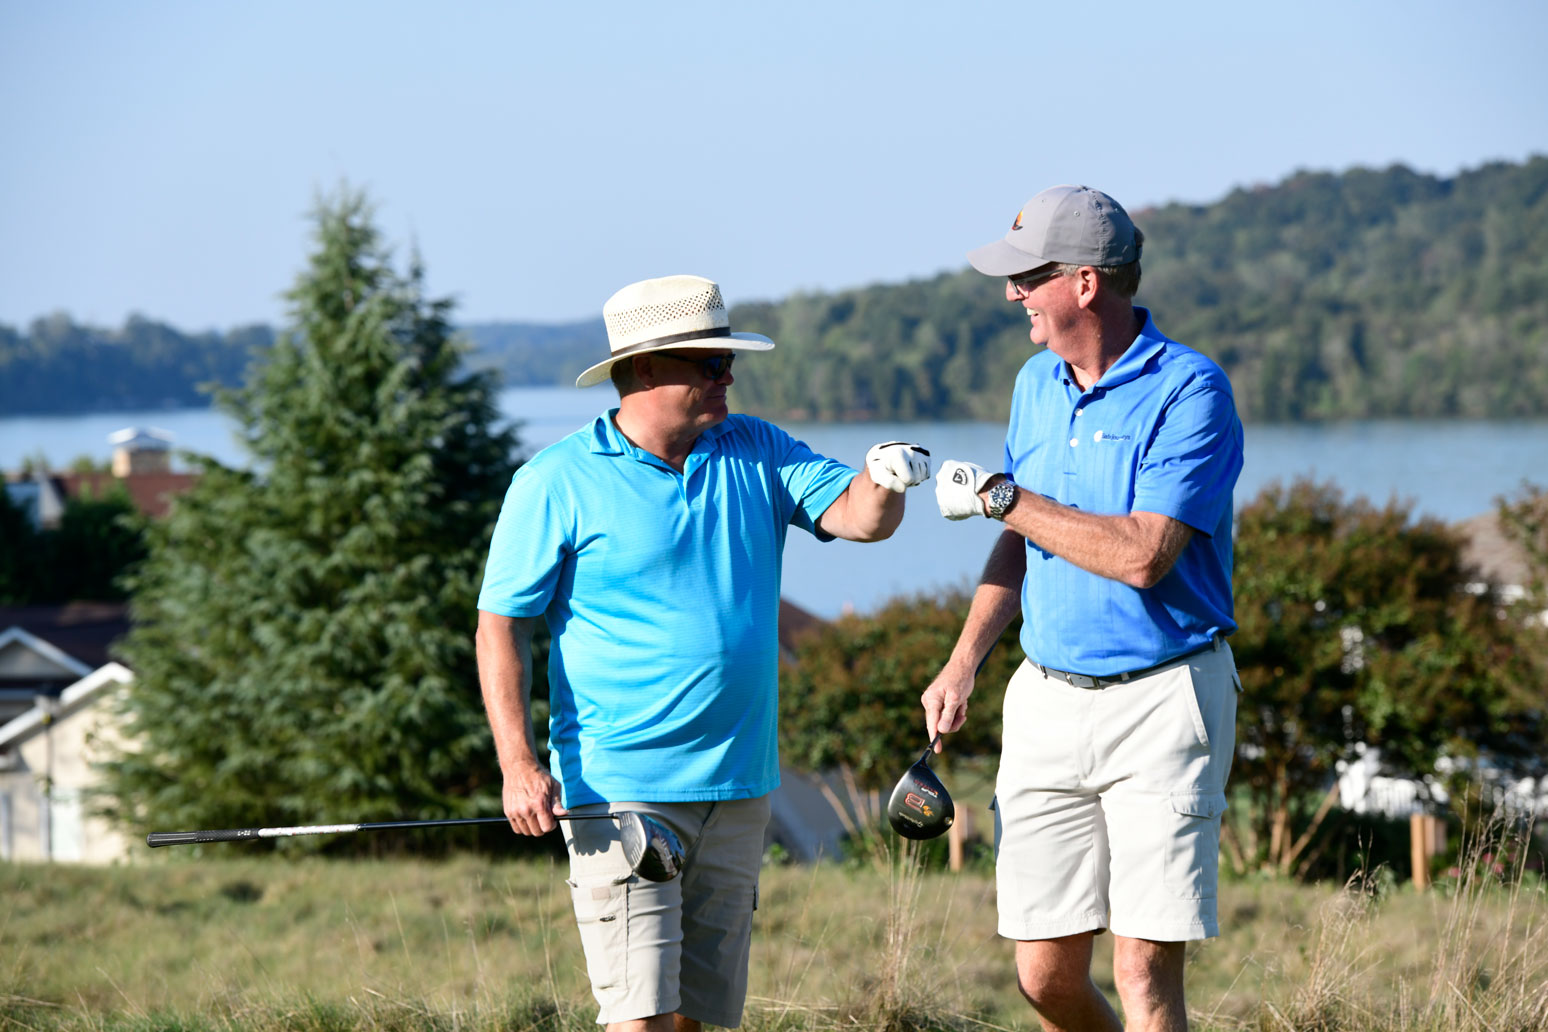 Men share a fist bump while on the golf course.